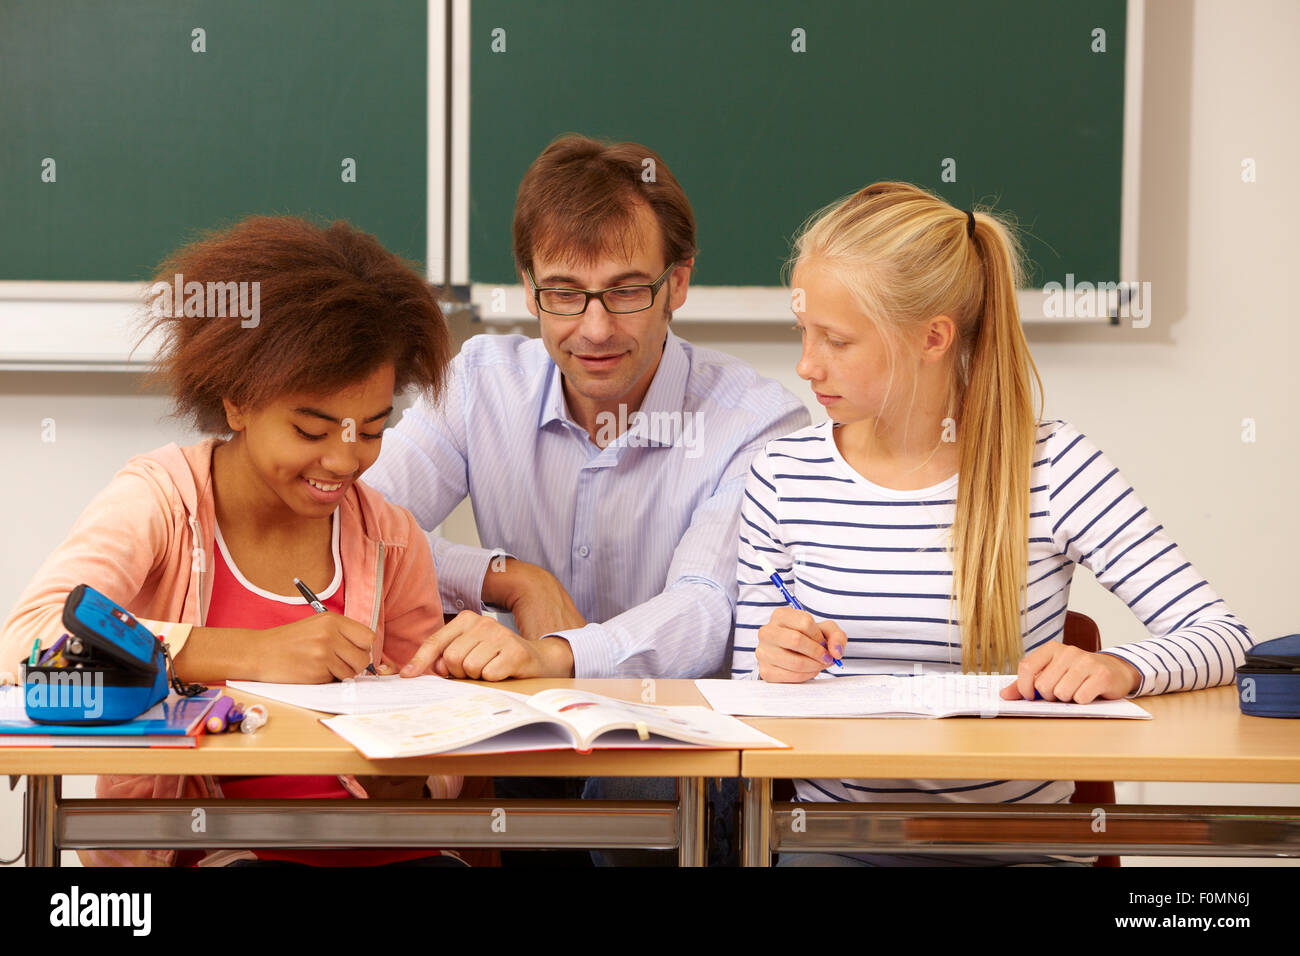 Teacher helps two schoolgirls in the lessons - Stock Image